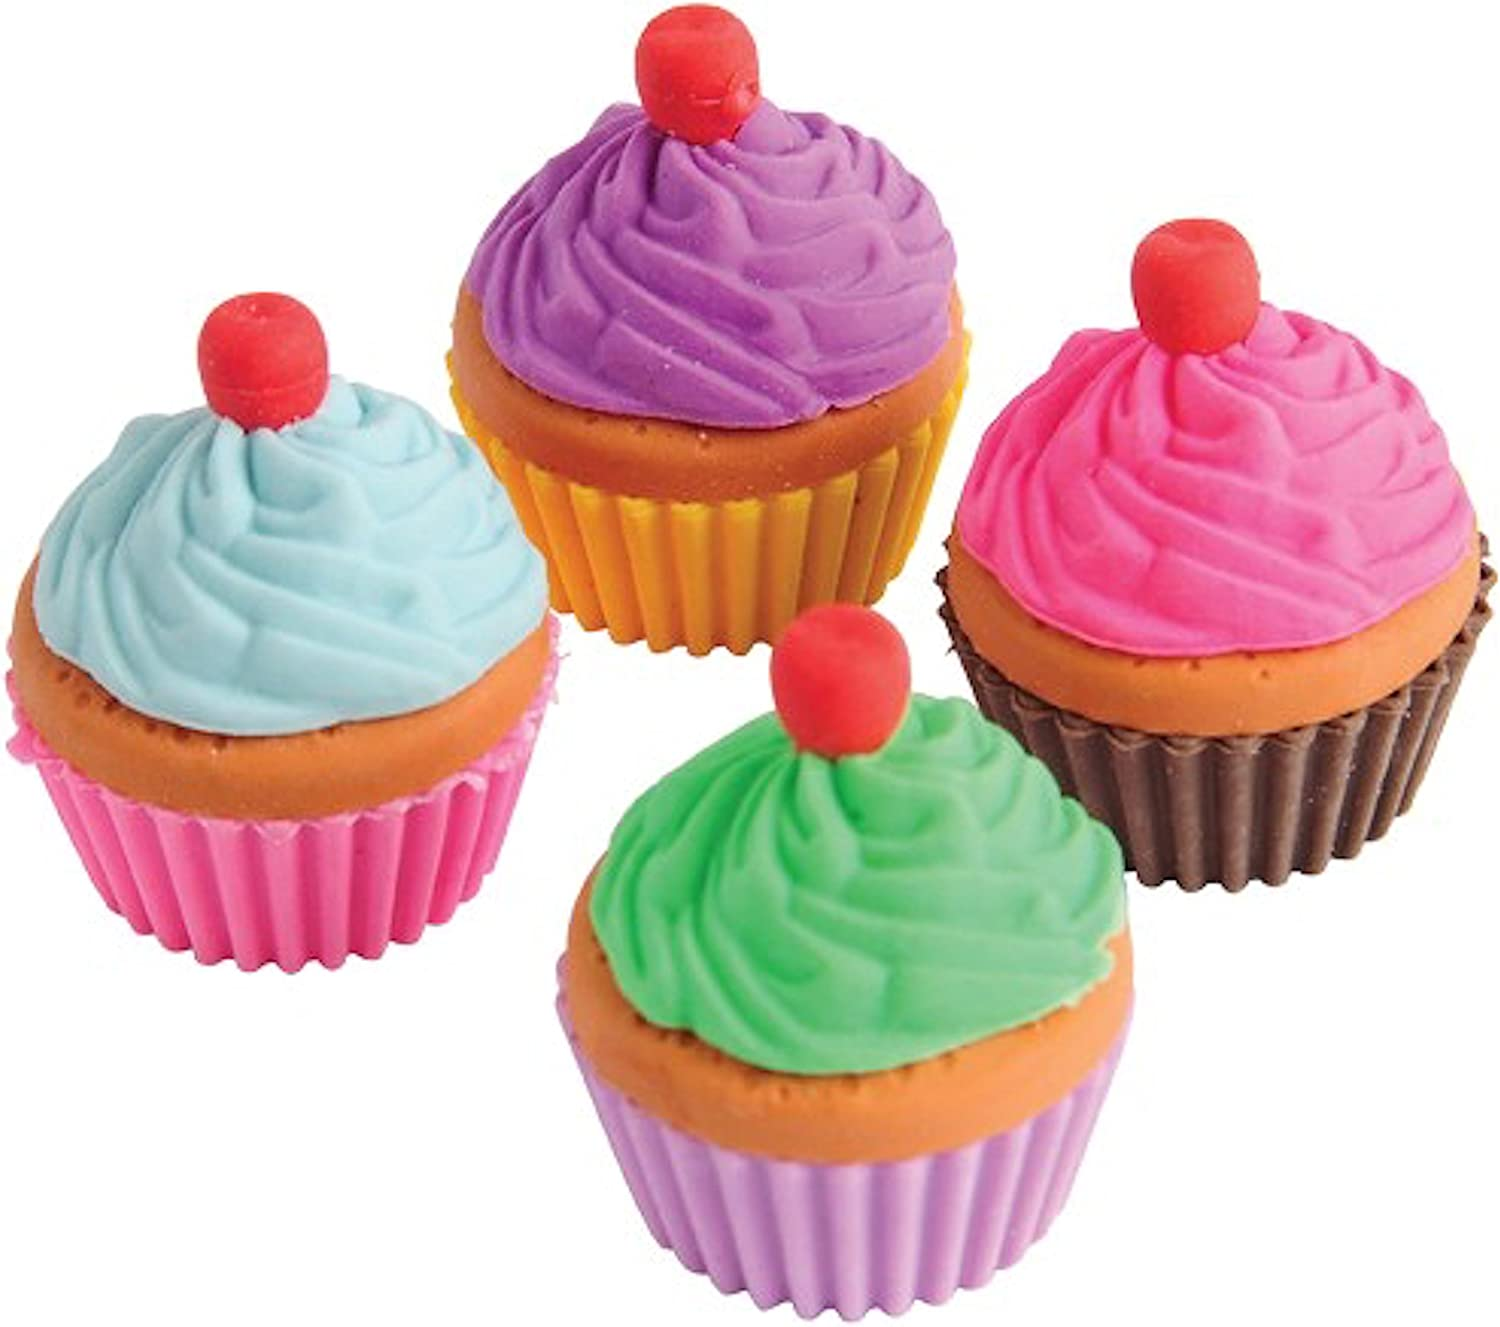 U.S. Toy Lot SEAL limited product of 12 Pull Erasers Color Free Shipping Cheap Bargain Gift Apart Assorted Cupcake